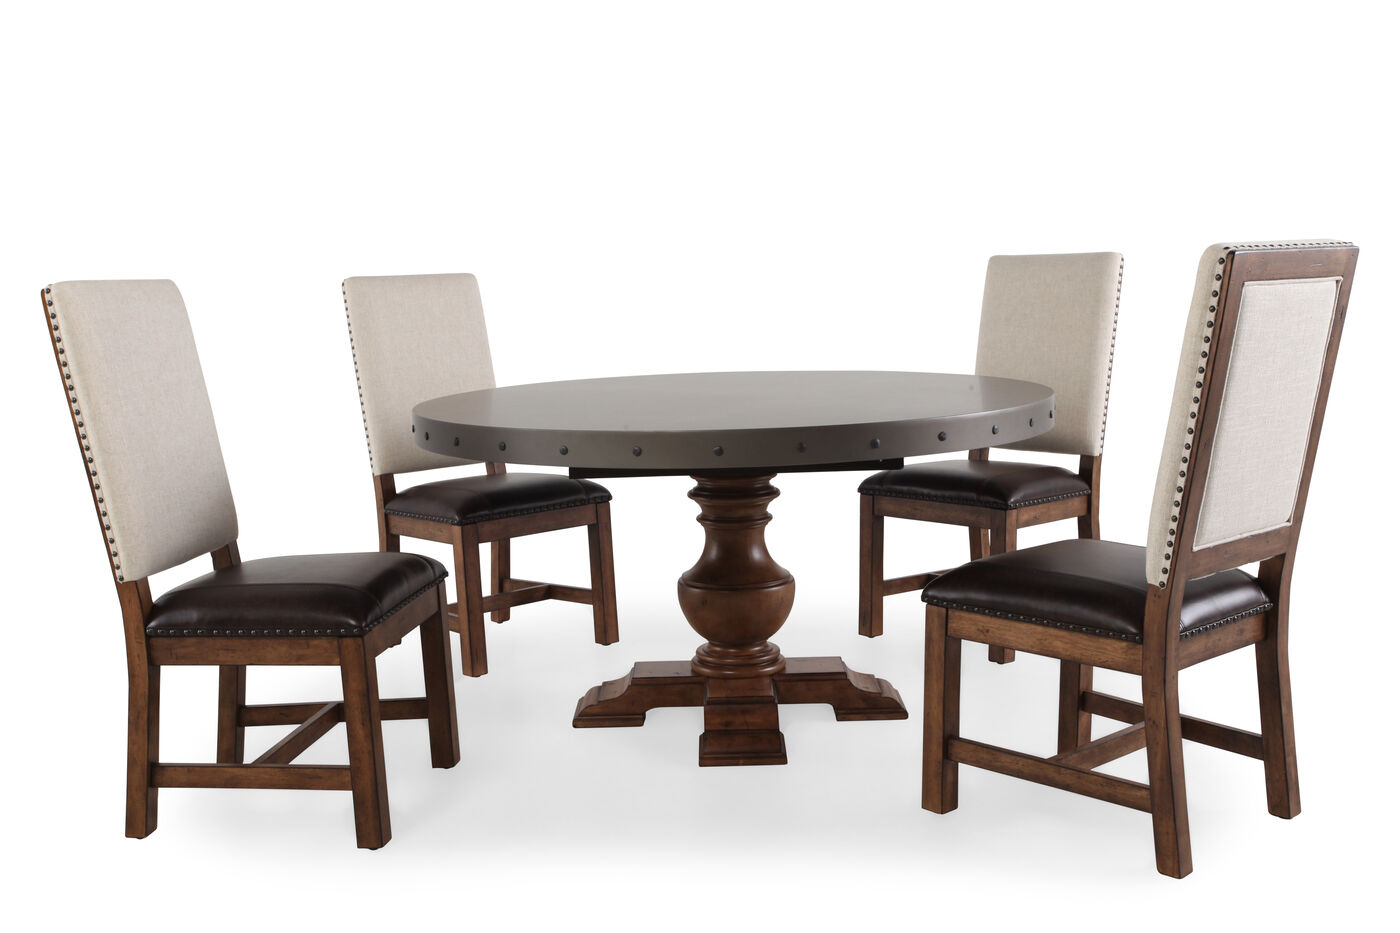 Pulaski Reddington Five Piece Dining Table Mathis Brothers Furniture